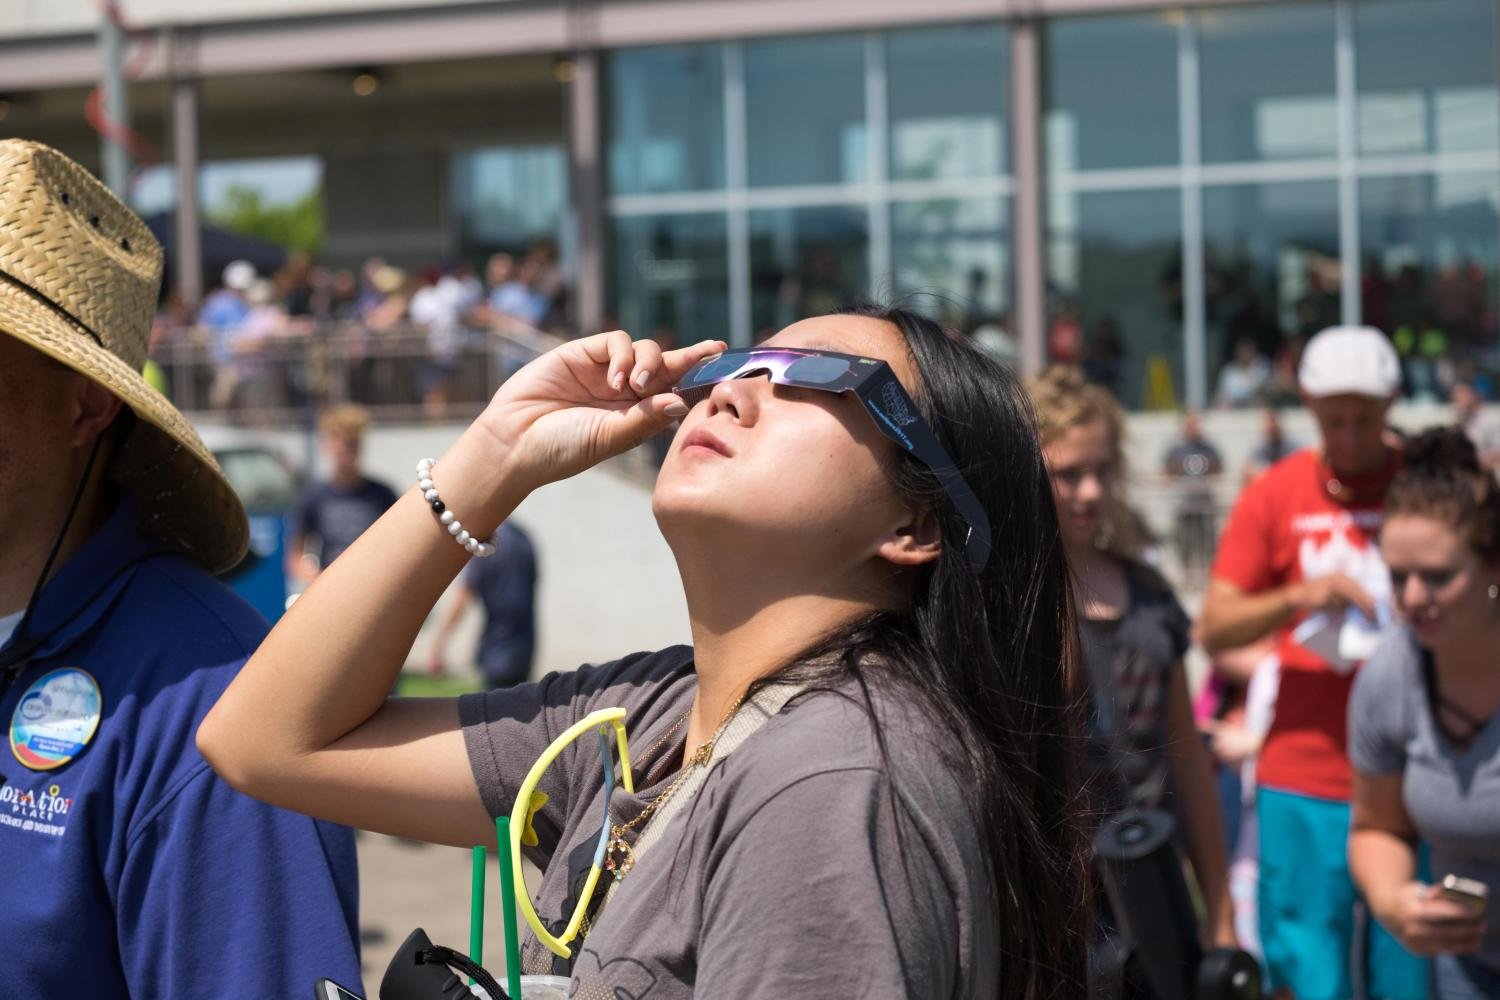 Tana+Thongsing%2C+a+senior+student+at+Wichita+State%2C+is+using+eclipse+glasses+to+look+at+the+solar+eclipse.